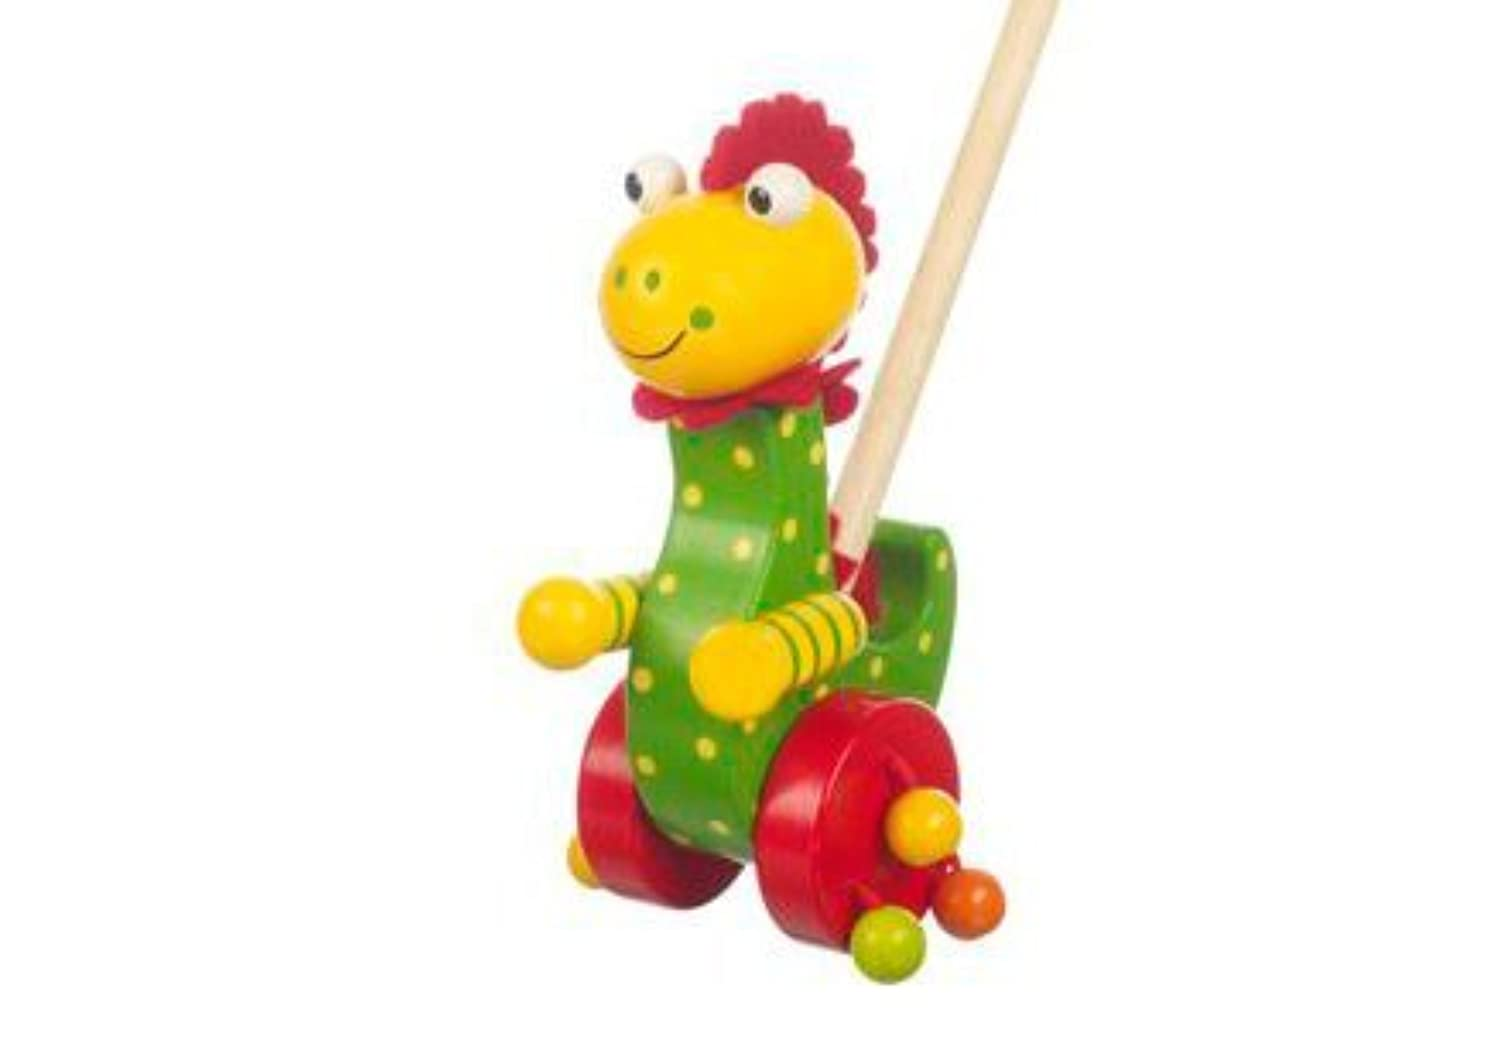 Orange Tree Childrens Wooden Push Along Toy Dino by Orange Tree Toys